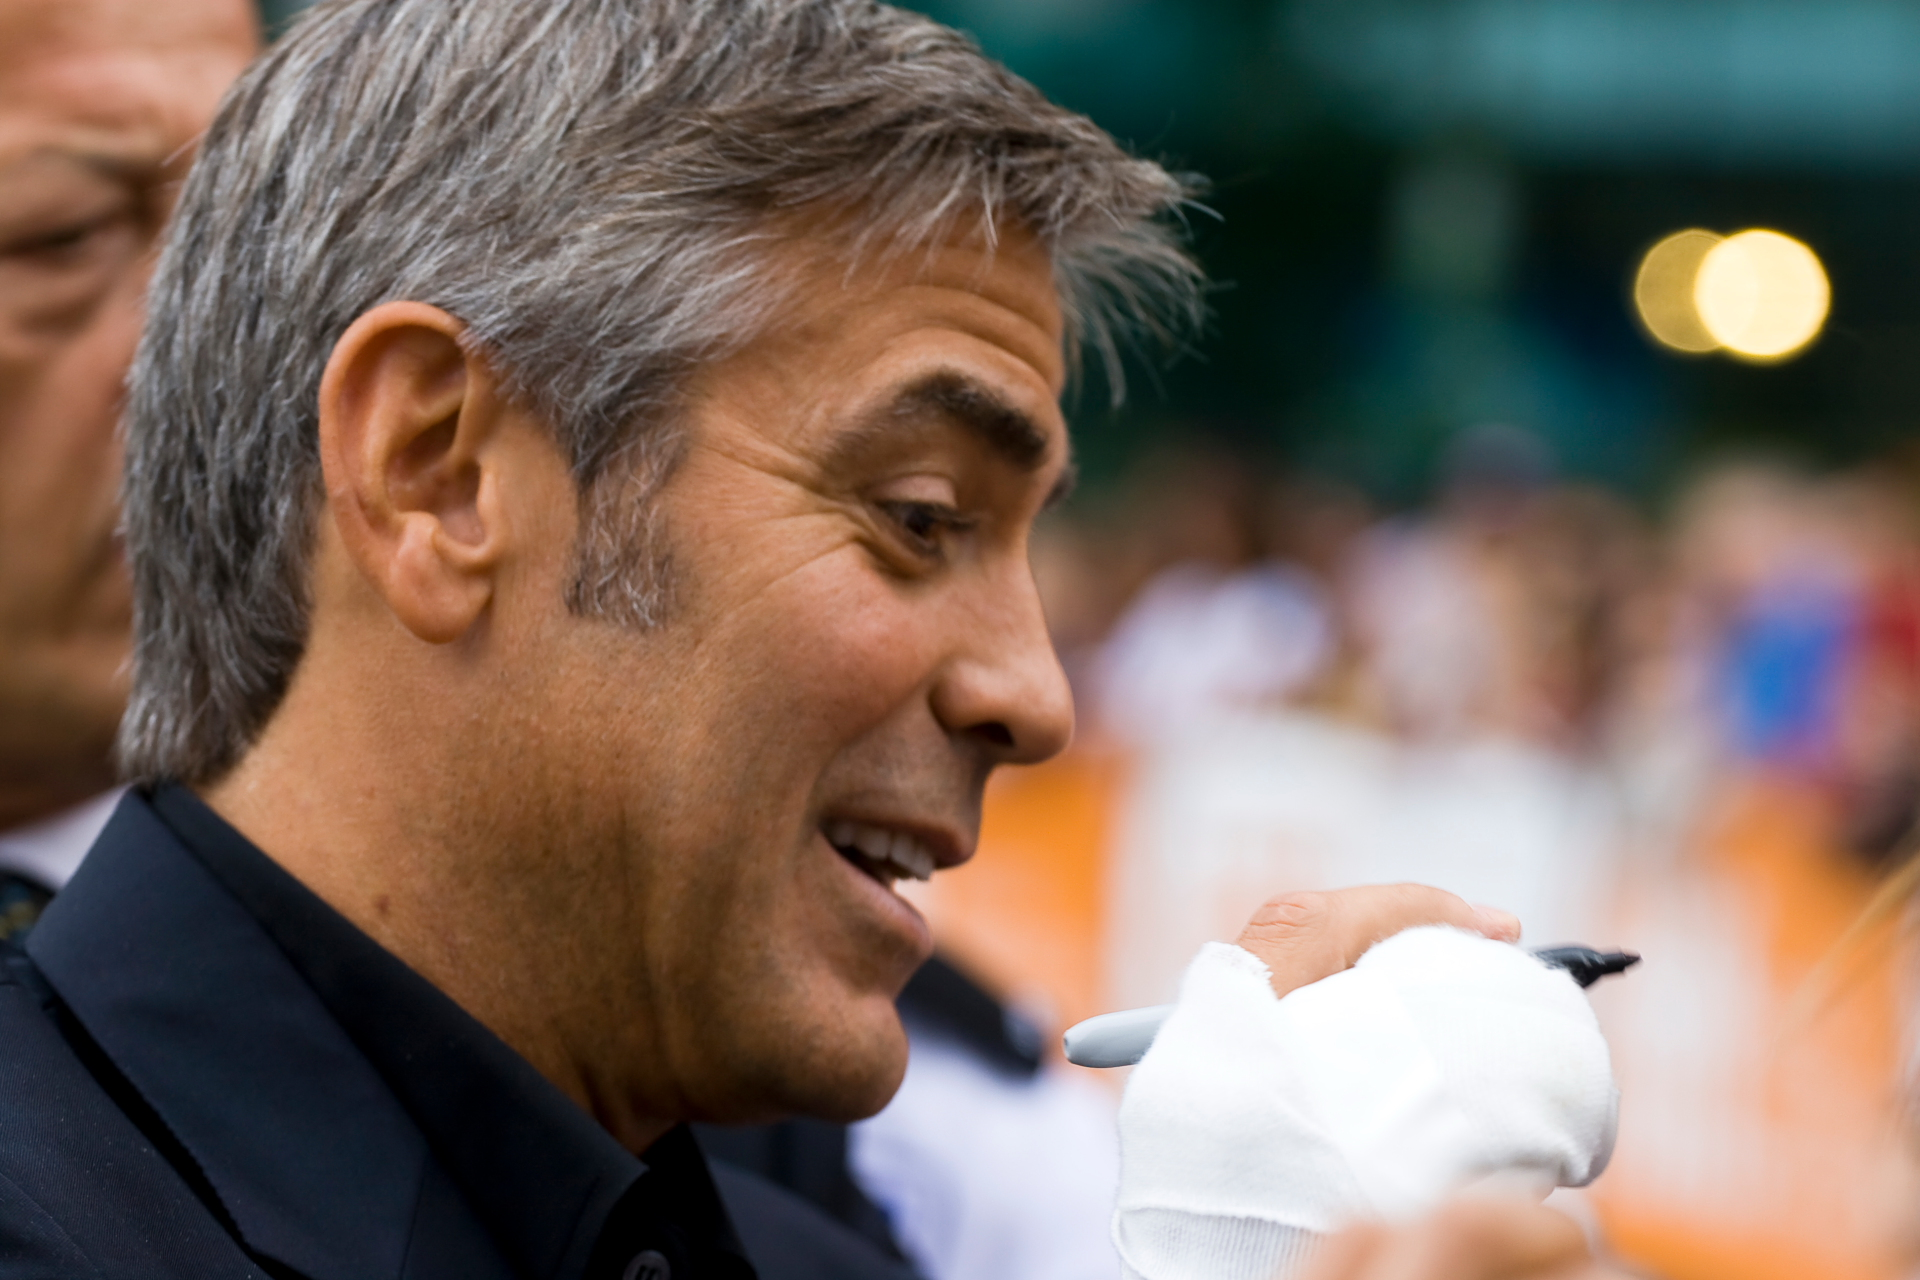 grey hair styles george clooney entertaining his admirers flickr photo 2521